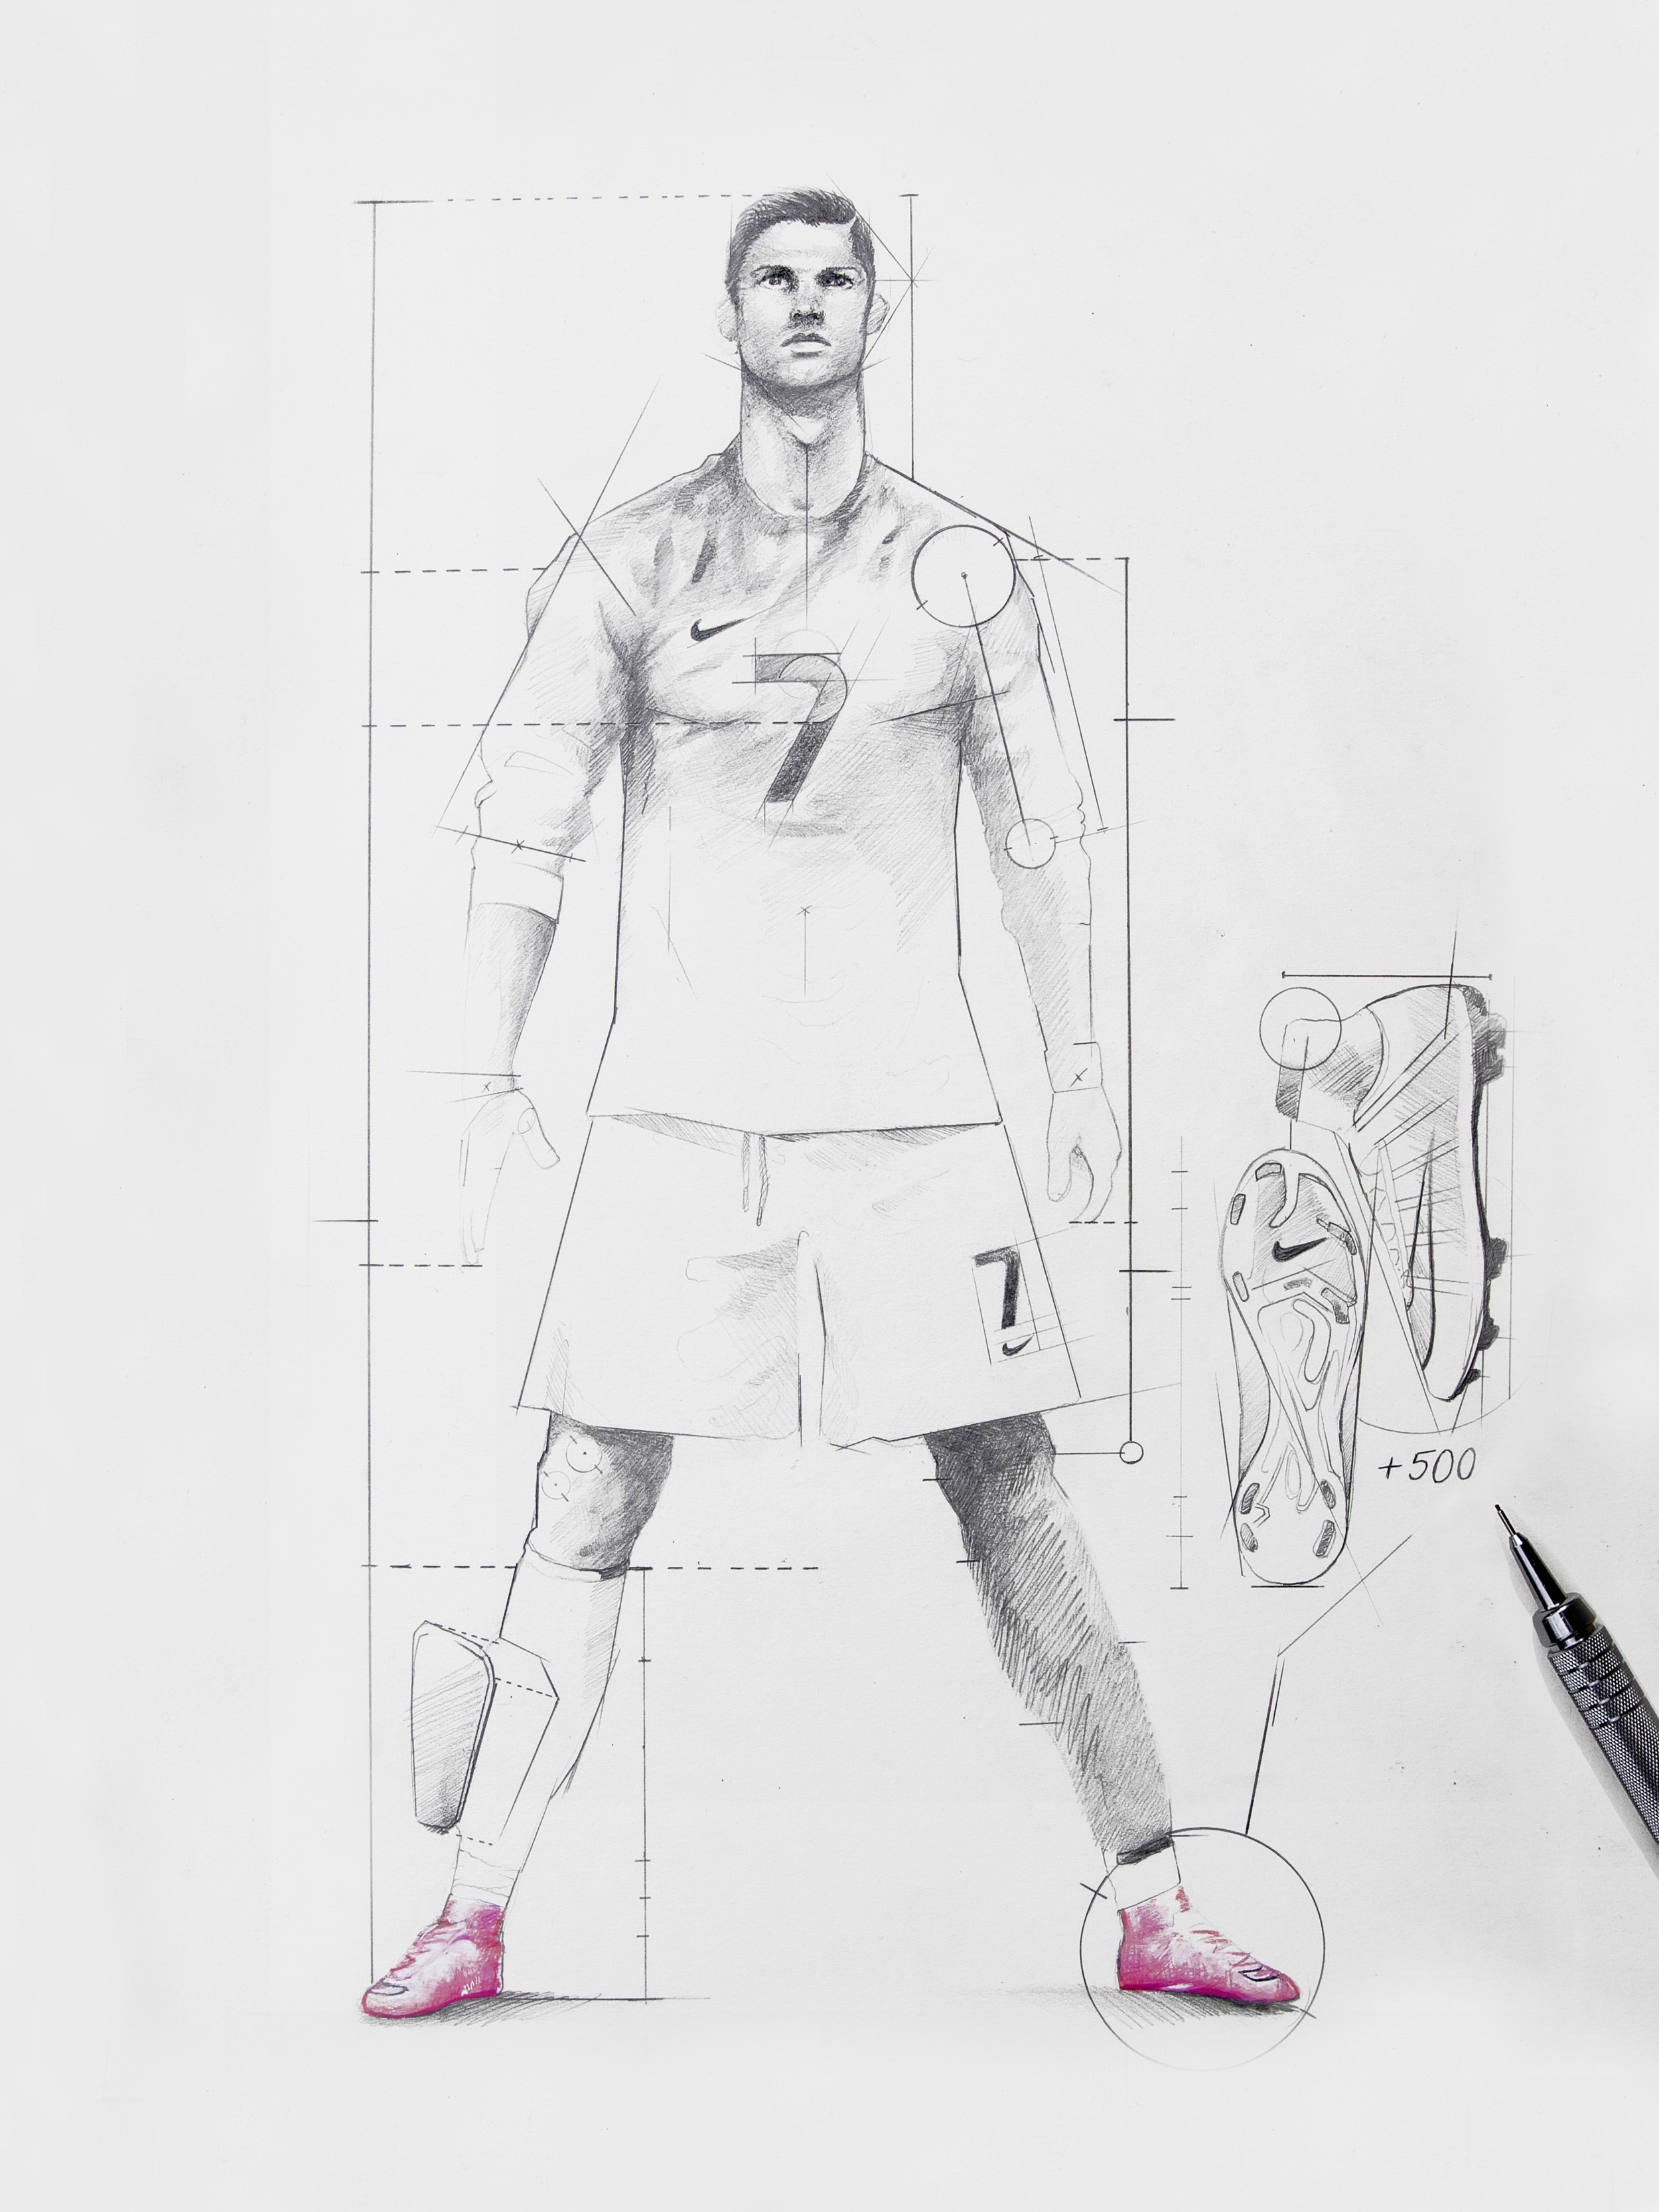 A scoring machine. --- Subject: Ronaldo, Cristiano Equipment: Mercurial Superfly Height: 185 cm Weight: 84 kg Left Foot: +89 Right Foot: +326 Head: +83 Unknown: +2 Total Goals: +500